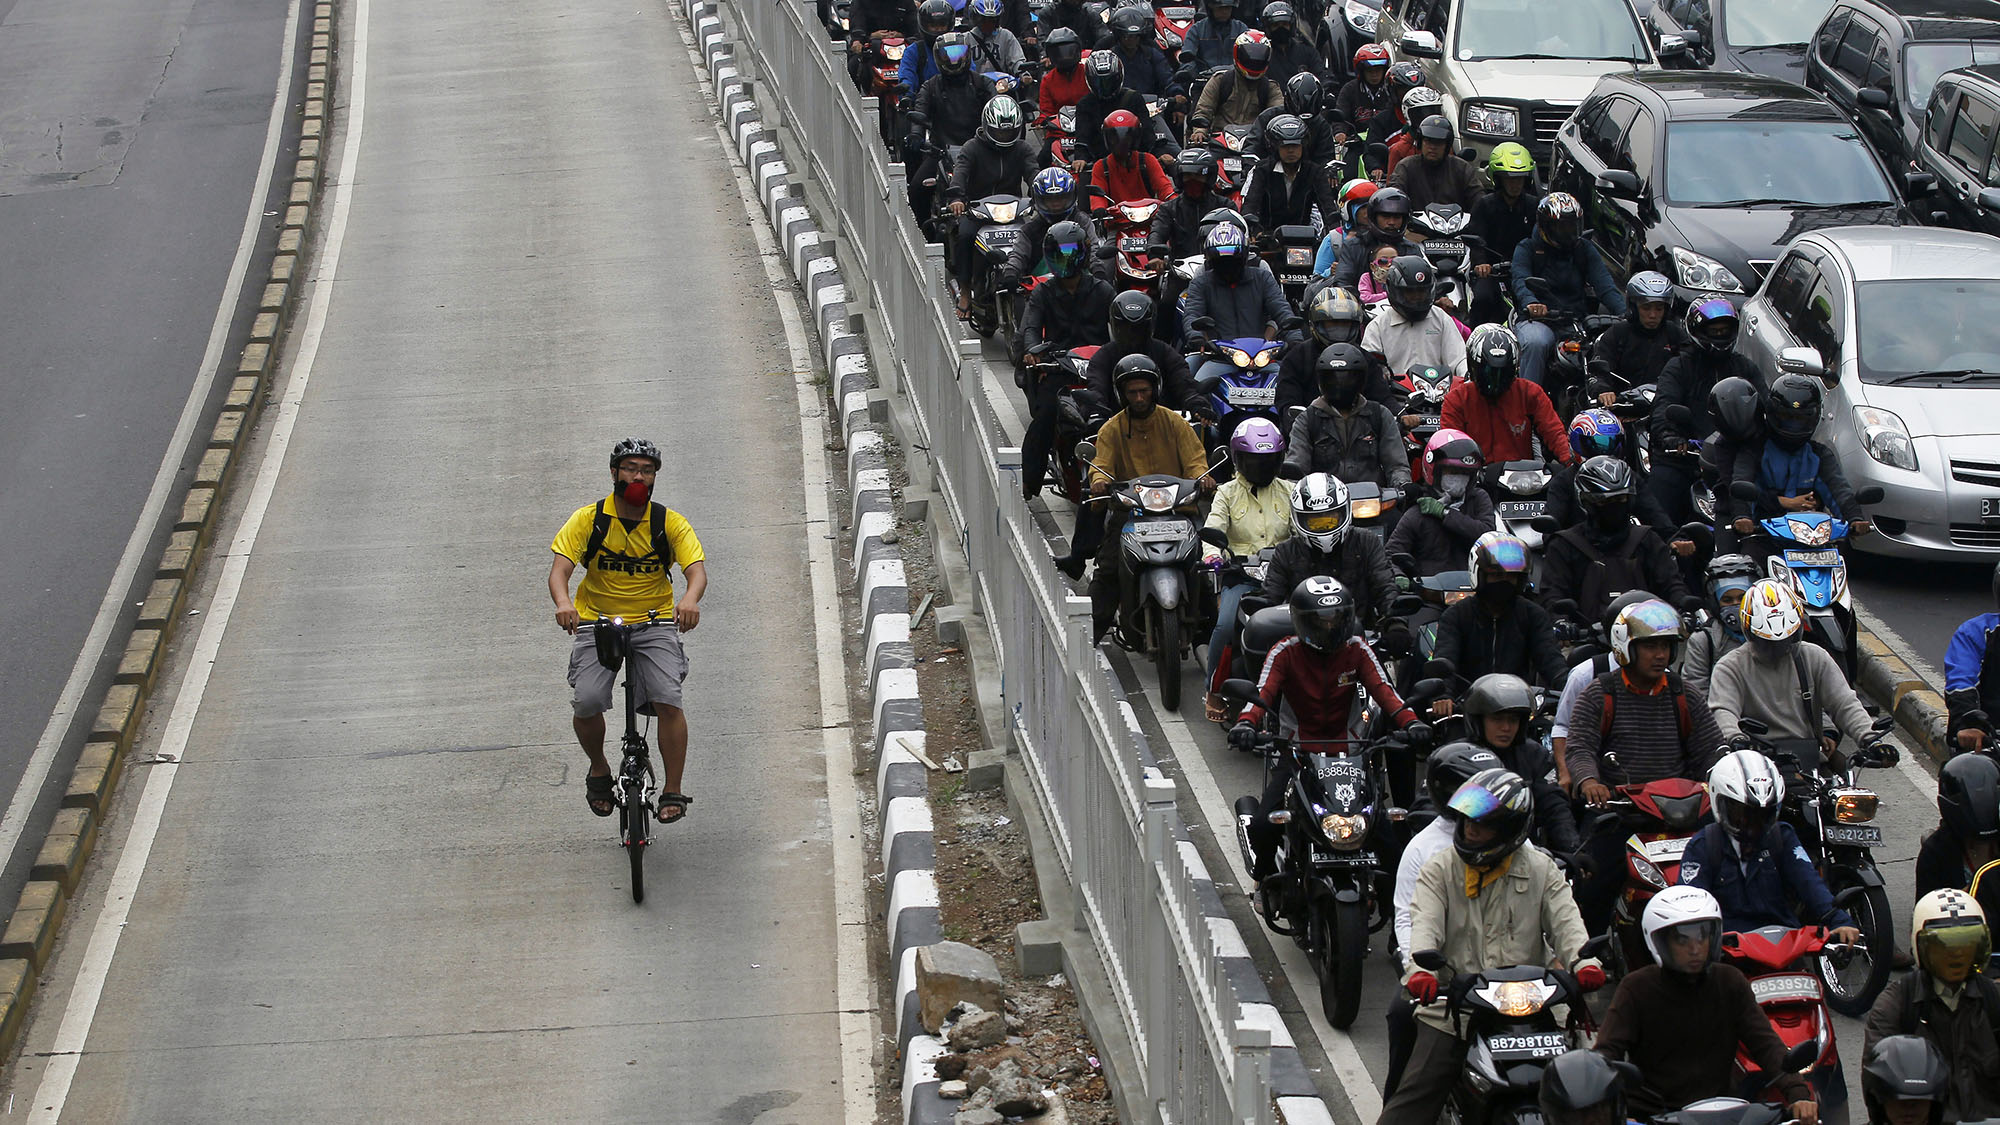 A man rides a bicycle in a bus lane next to a morning rush hour traffic jam in Jakarta November 10, 2011. Indonesia's central bank said on Thursday it saw economic growth in 2012 could slow to below 6.5 percent, as it cut its benchmark overnight interest rate by a surprise 50 basis points to a record low 6 percent to ward off the effect of a slowdown in Europe and China.